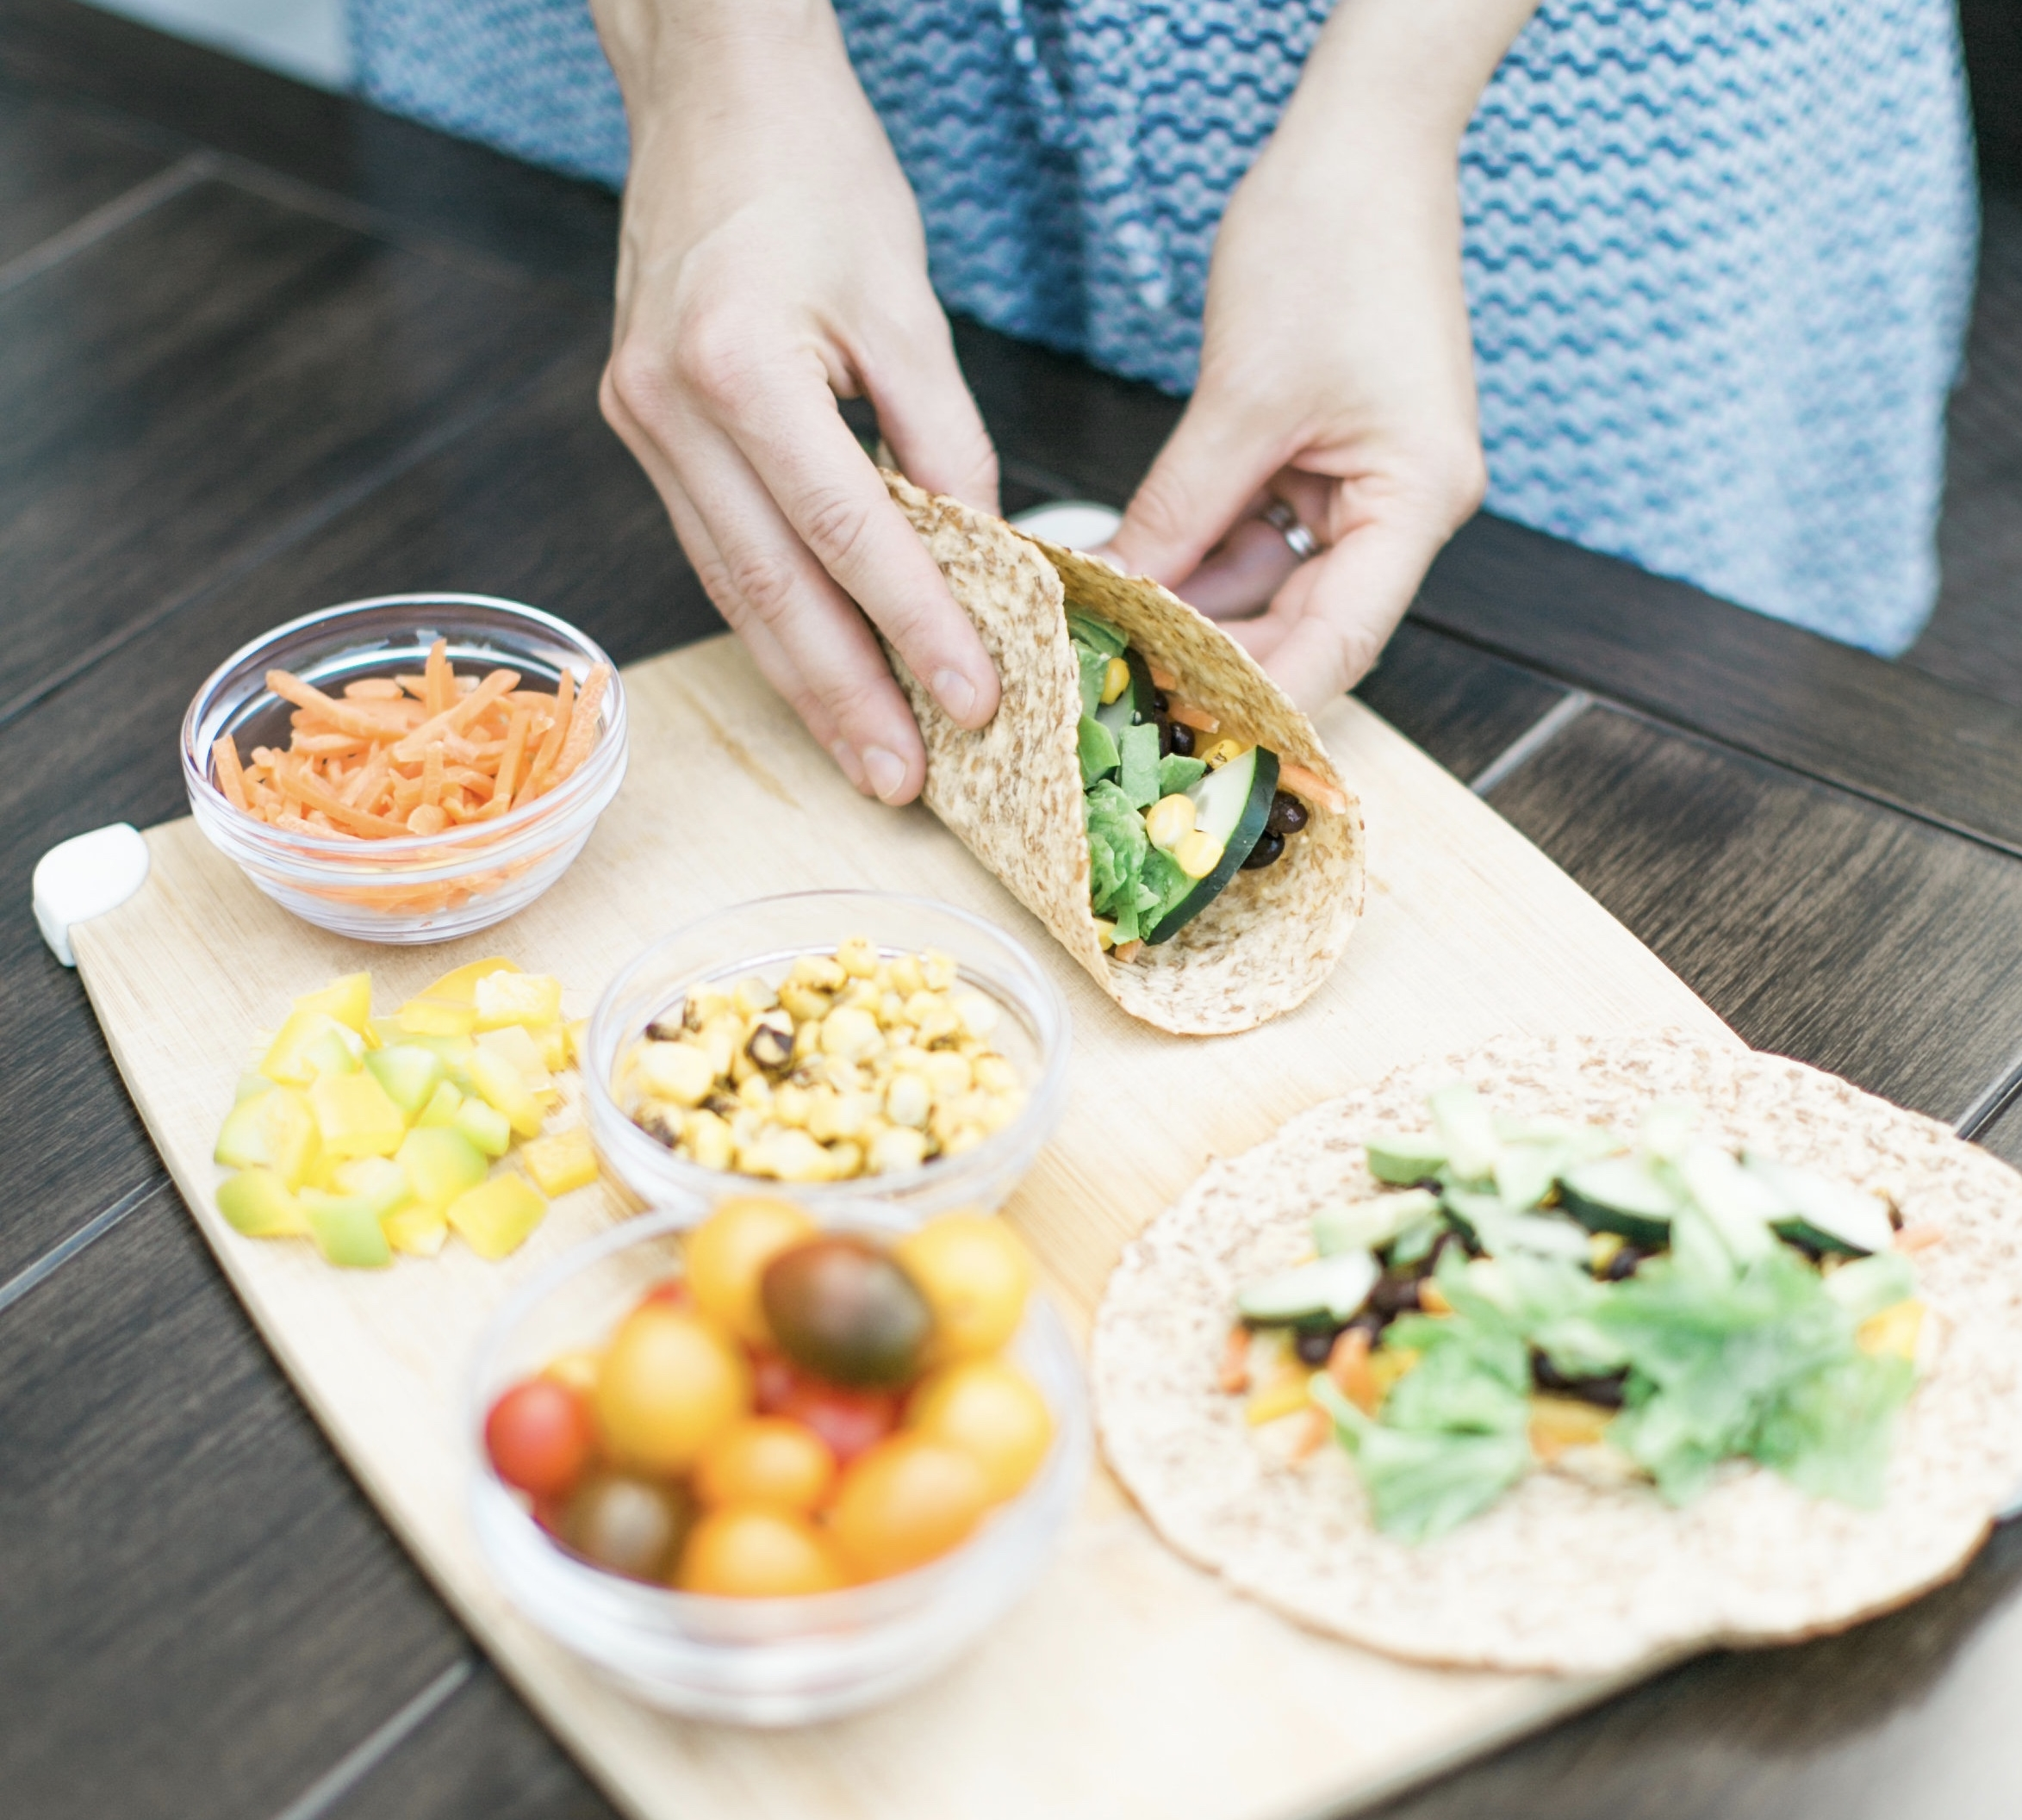 Parent Tips: - These veggie wraps can include any variety of vegetables your child enjoys or you have on hand. Simply cut & prep vegetables over the weekend and these wraps will be ready in a pinch!If your child attends a nut-free school or daycare, try sunflower butter instead!